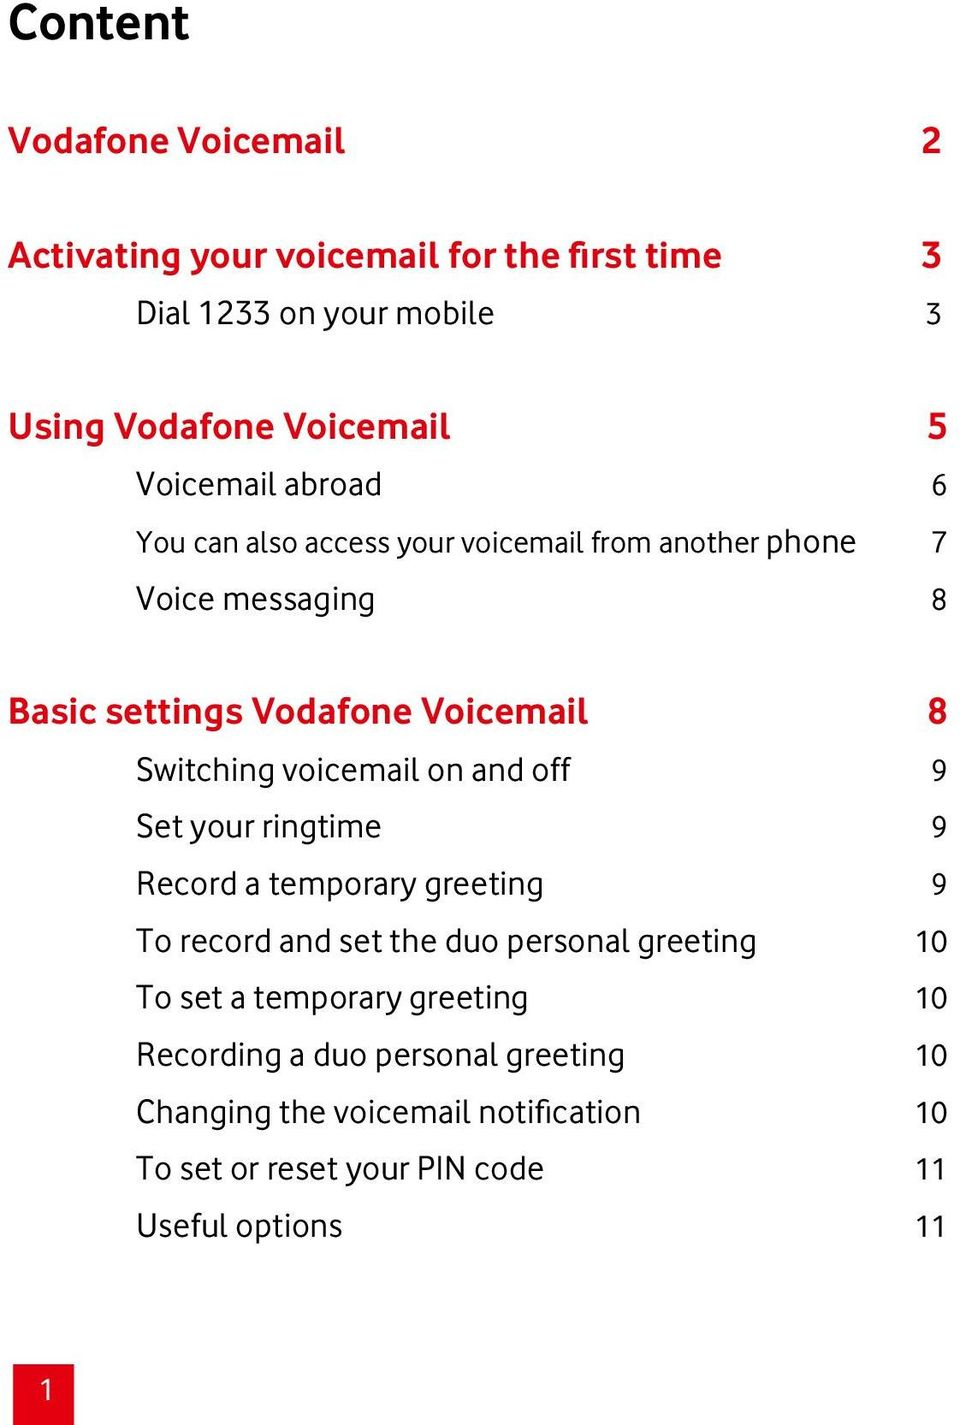 Switching voicemail on and off 9 Set your ringtime 9 Record a temporary greeting 9 To record and set the duo personal greeting 10 To set